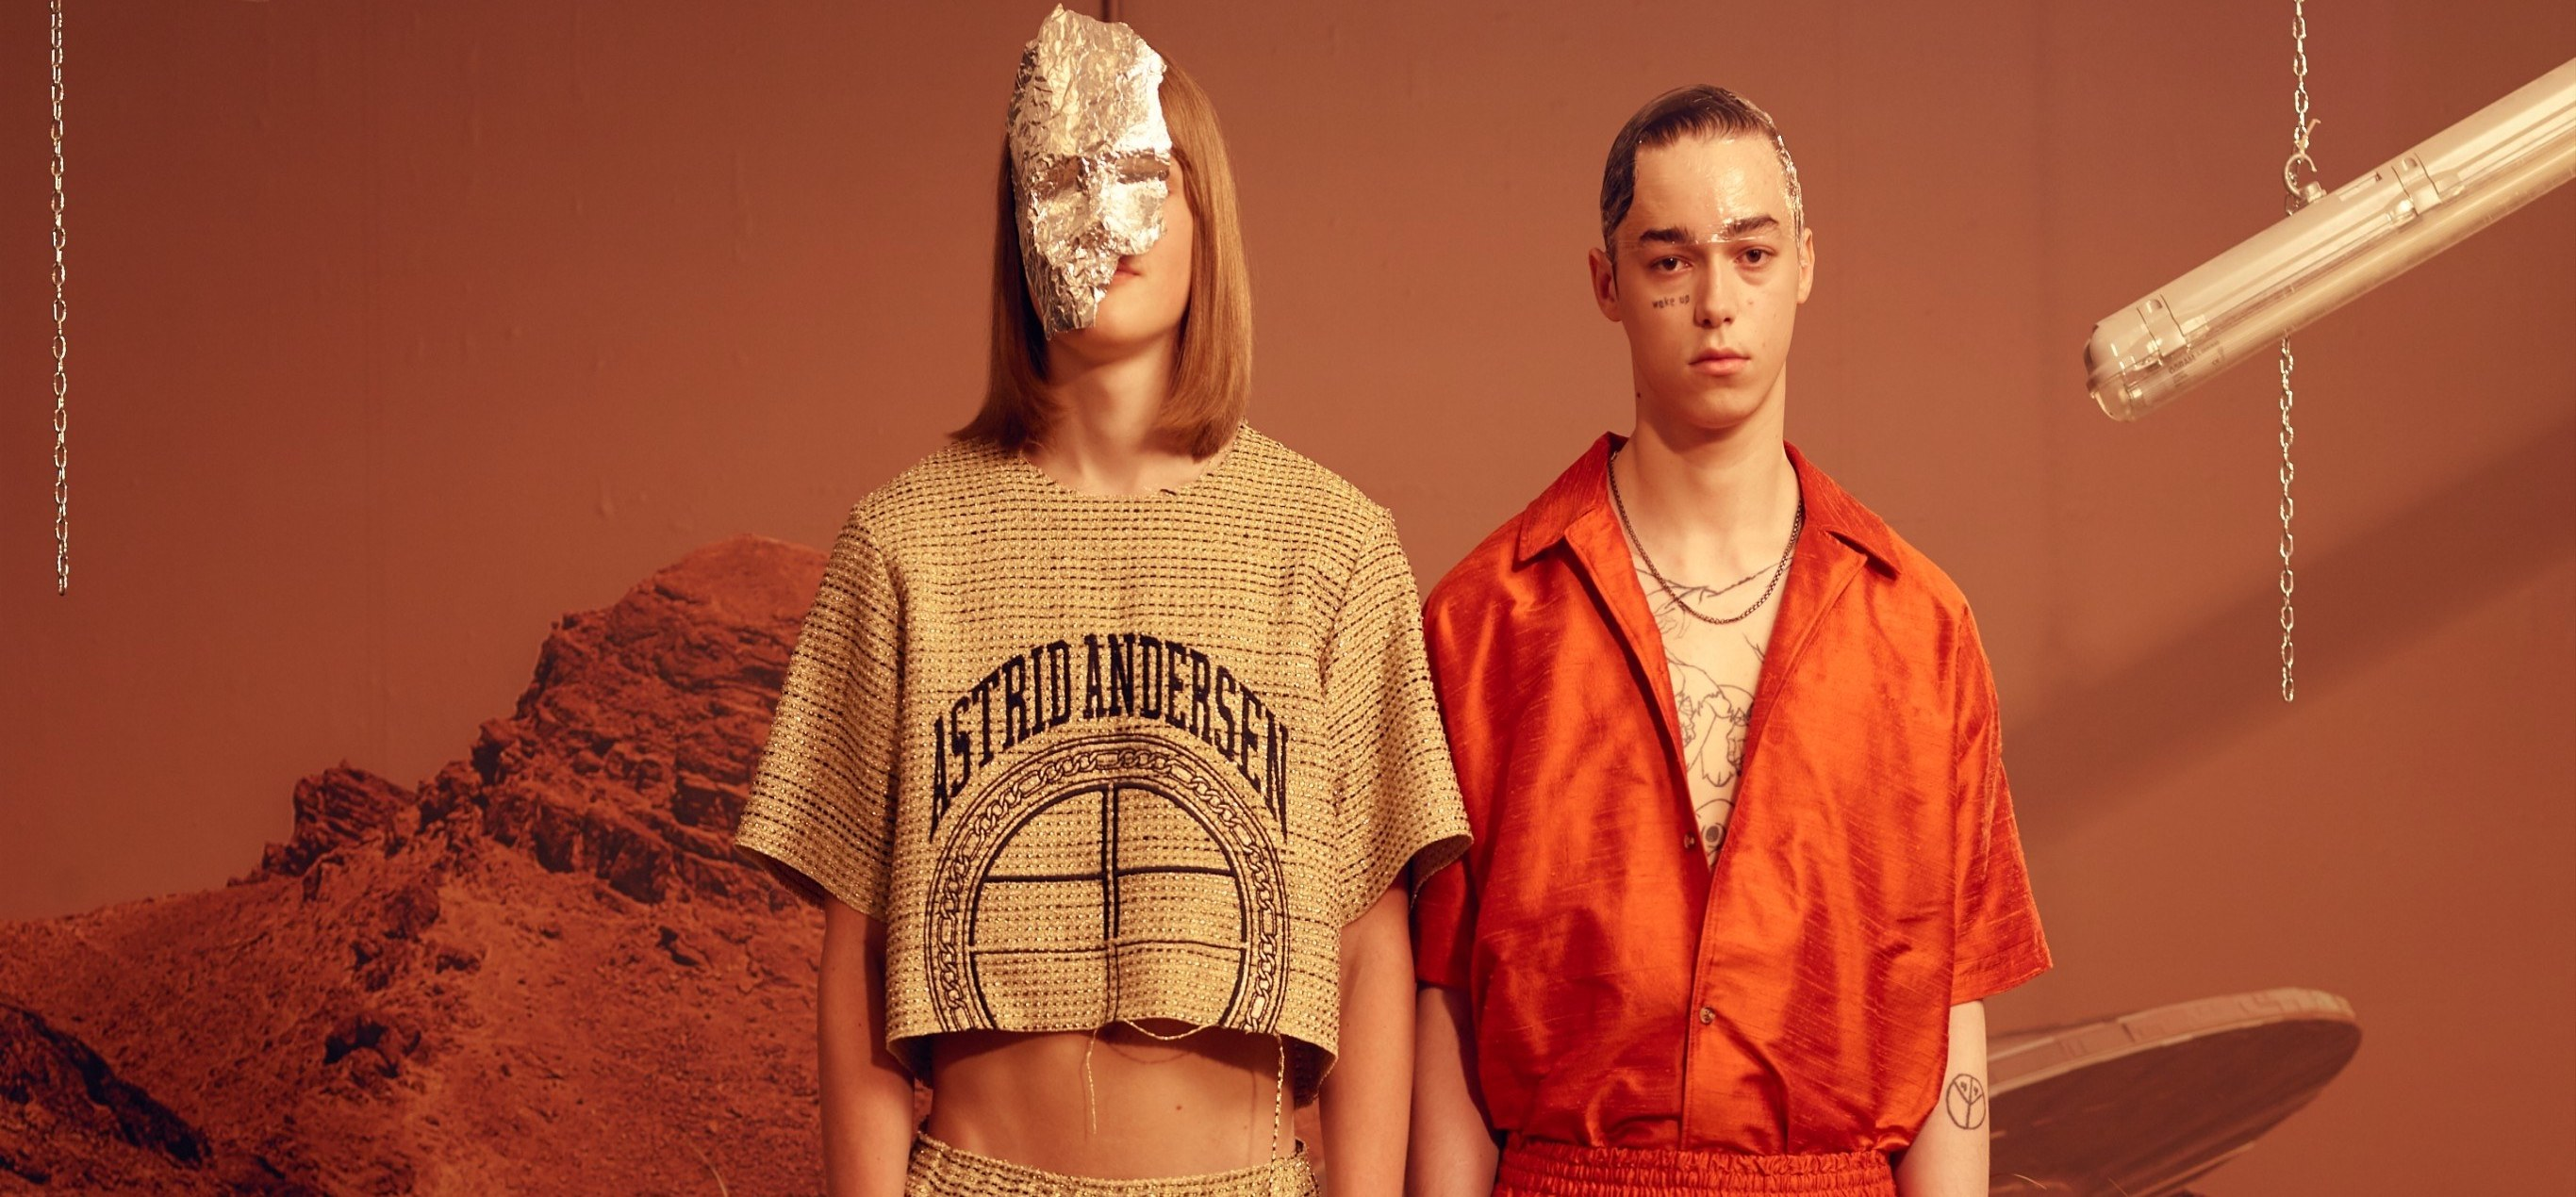 LFWM: Astrid Anderson Presents Spring 2019 Menswear Collection